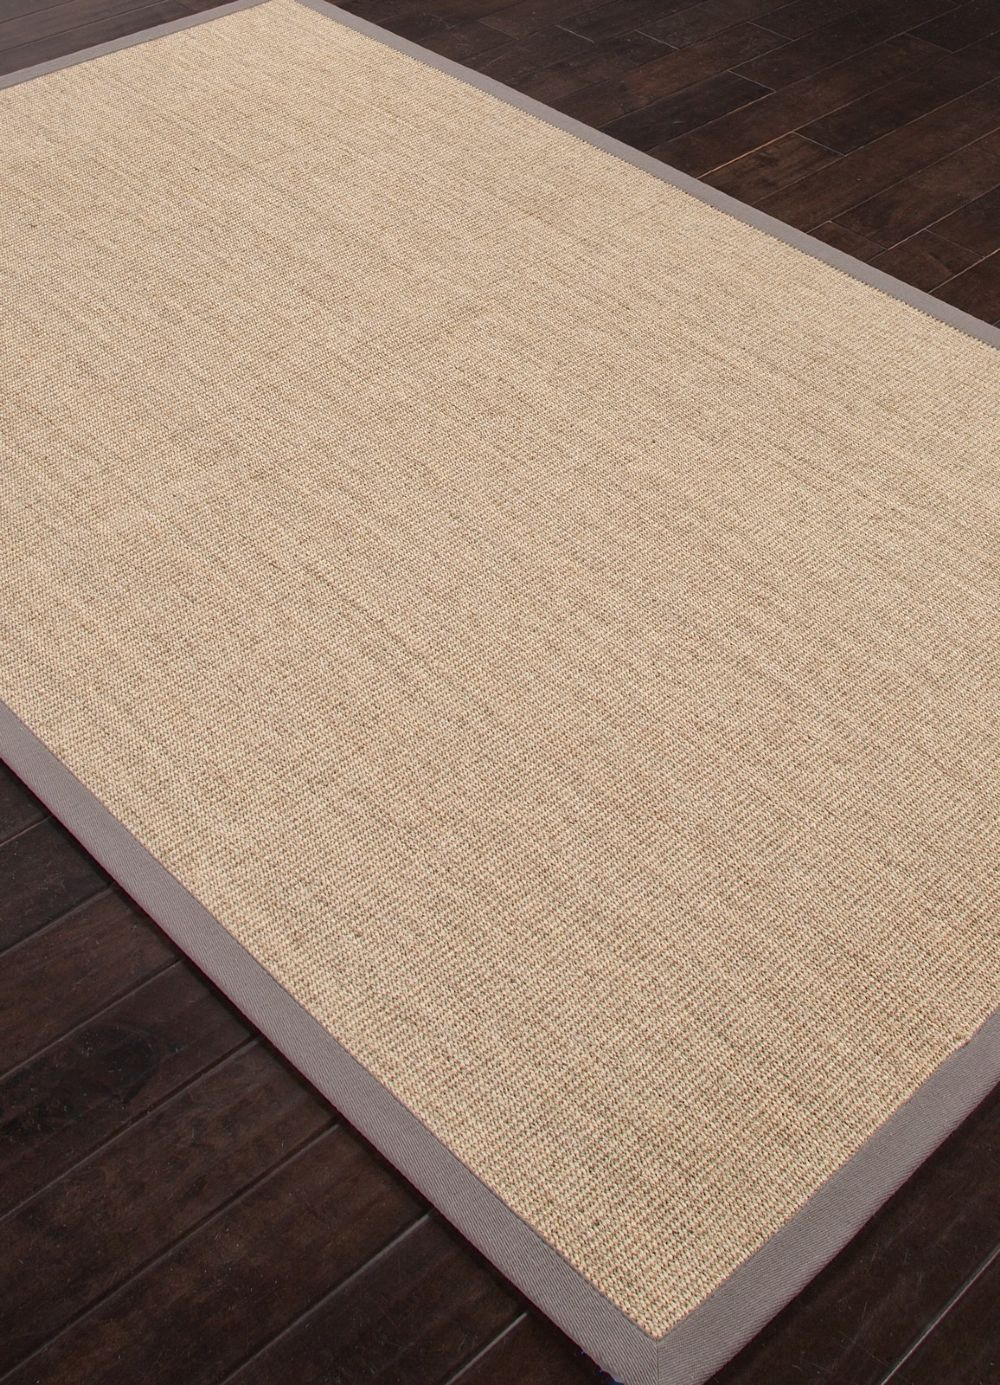 jaipur naturals sanibel plus natural fiber area rug collection